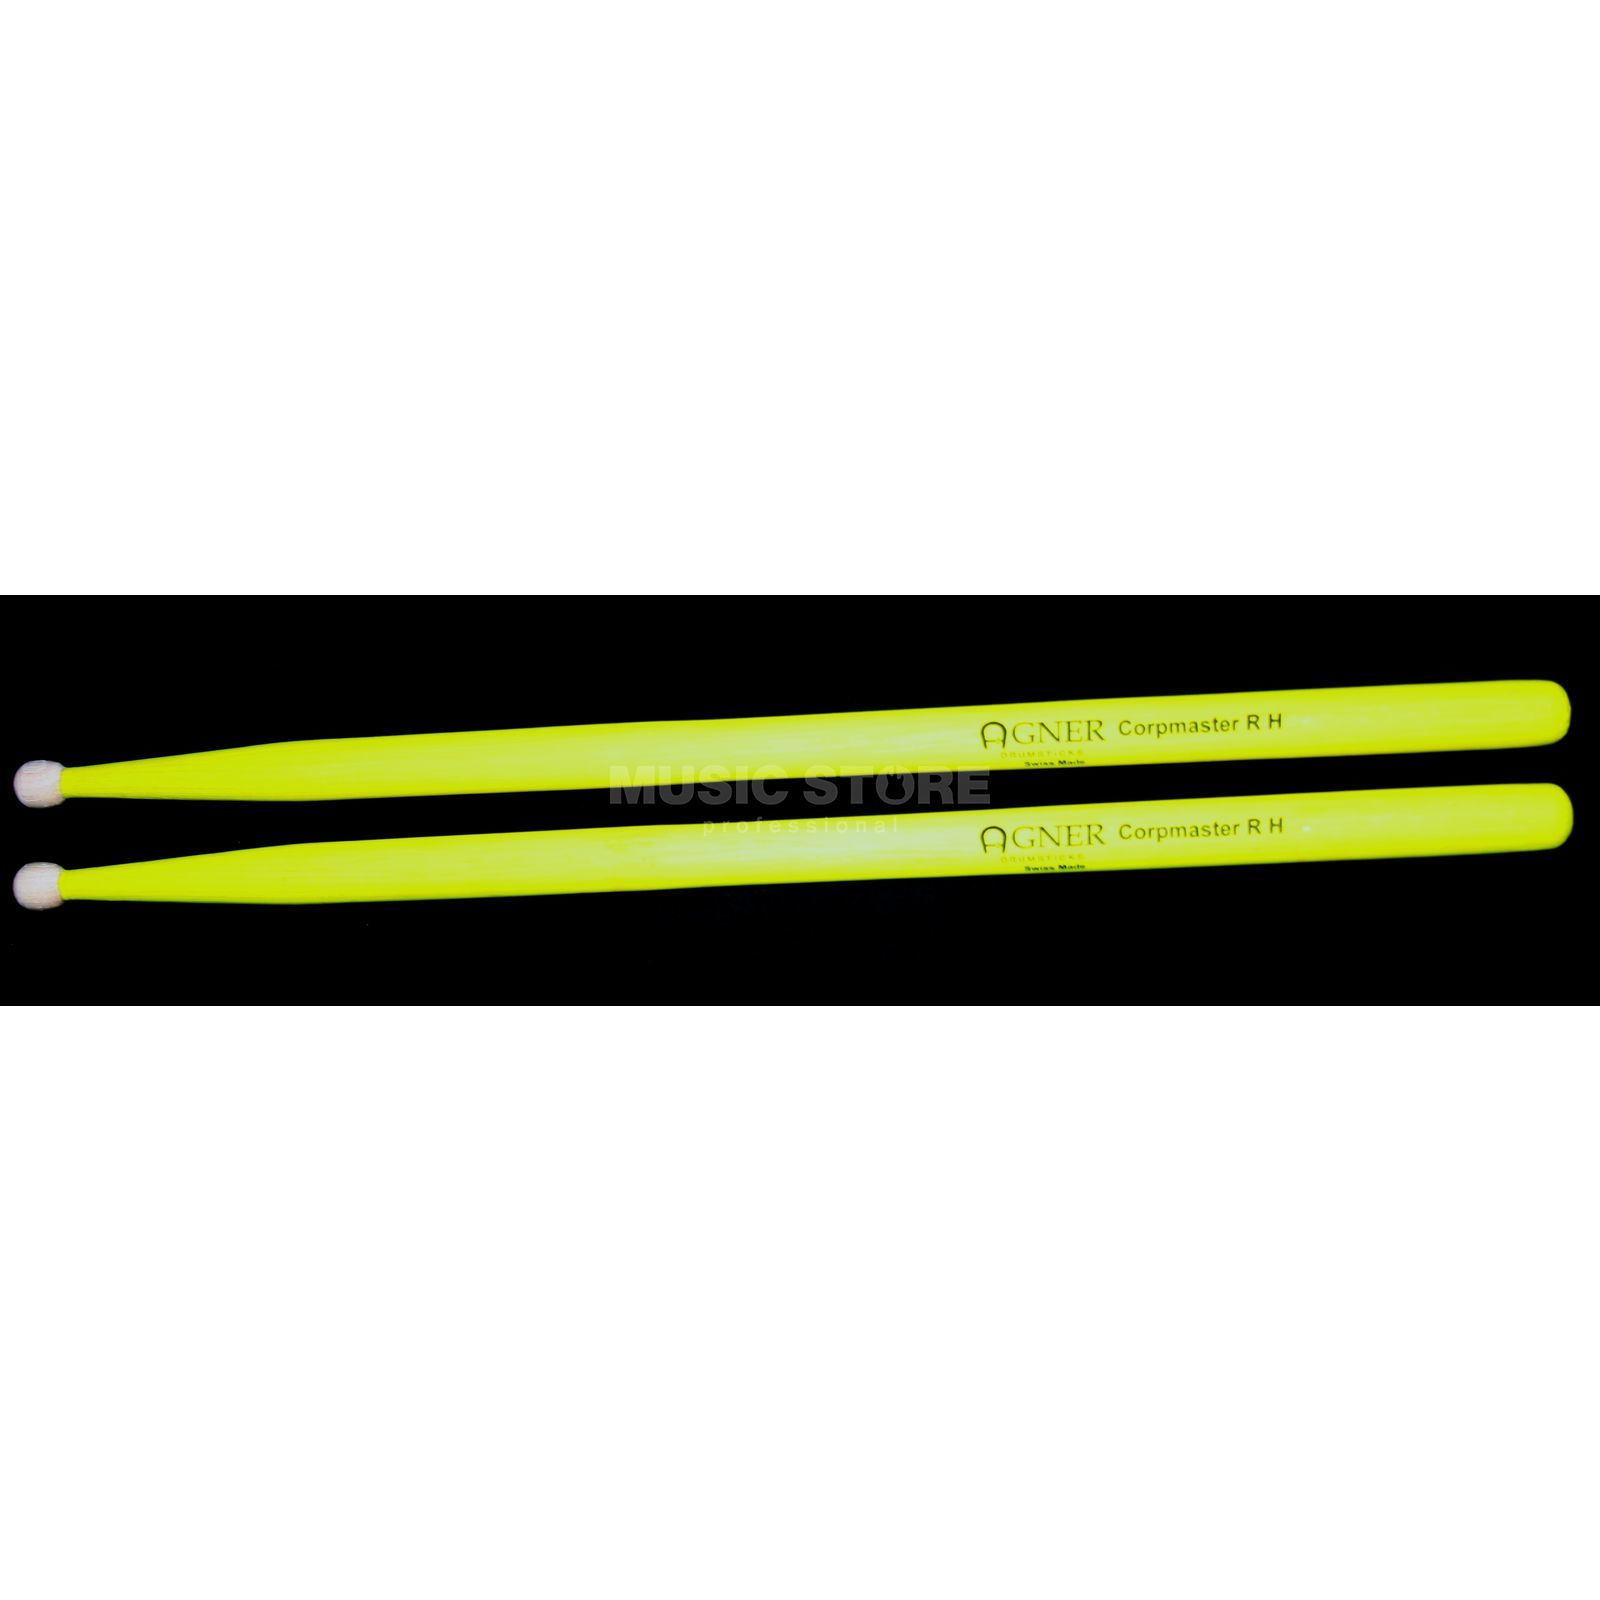 Agner UV-Marching Sticks, 4A, Corpmaster R H, Yellow Product Image